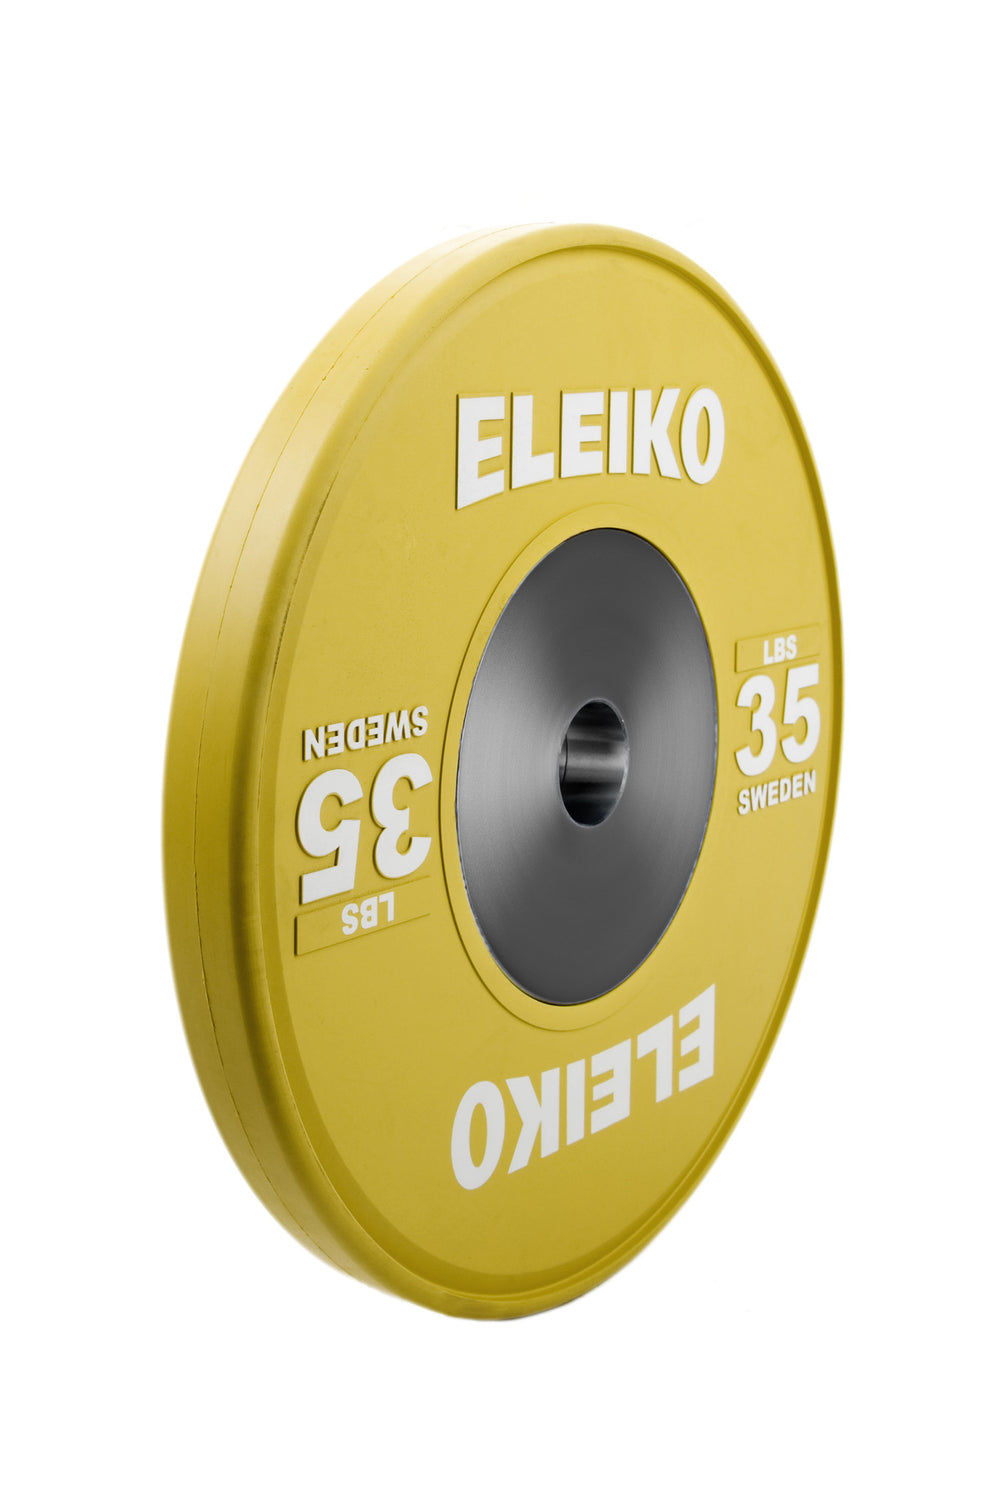 DEMO -  Eleiko Olympic Weightlifting Training Disc, colored, LBS